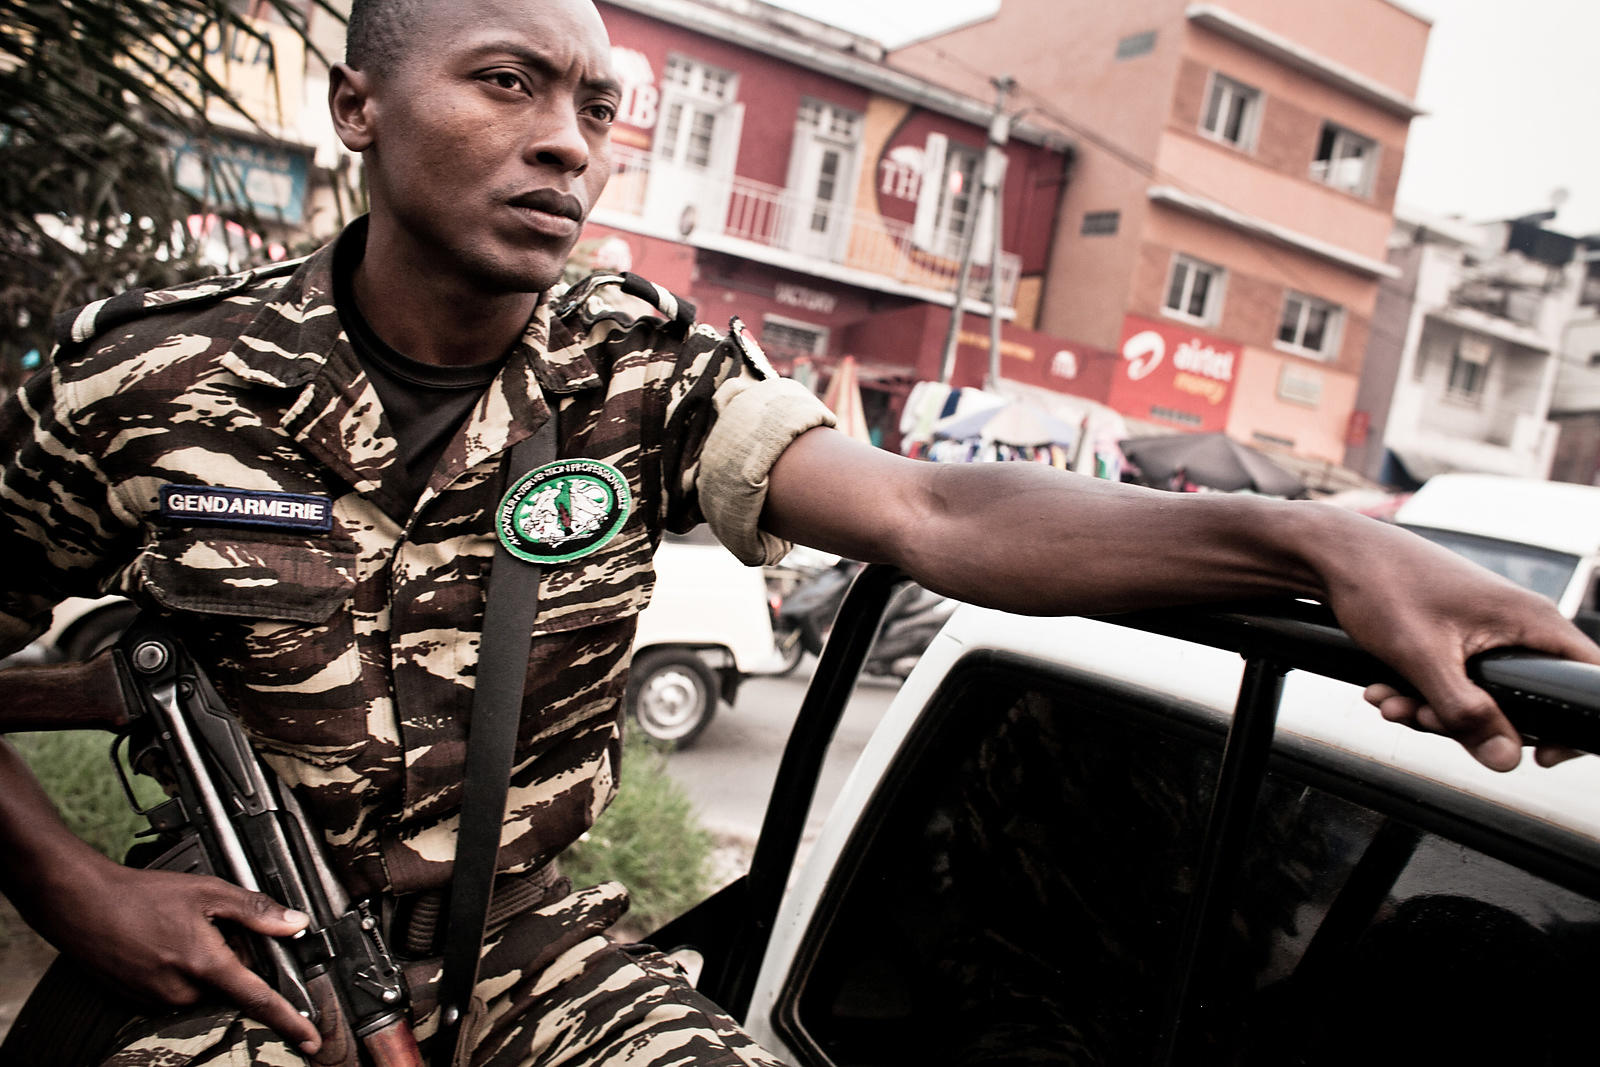 A gendarme patrols near a polling station in the Anosy district of Antananarivo on October 24, 2013. Poverty-wracked Madagascar votes on october 25 in long-delayed elections expected to restore democracy and pull the vanilla-rich country out of the rut it sunk into after a 2009 coup. With 33 candidates on the ballot paper and no clear favourite, chances of a first-round winner appear slim, raising the possibility of a run-off in eight weeks' time. Main political players, including strongman Andry Rajoelina and the man he toppled in March 2009, Marc Ravalomanana -- have been barred from the election to avoid their long-running political wrangling from jeopardising the vote.